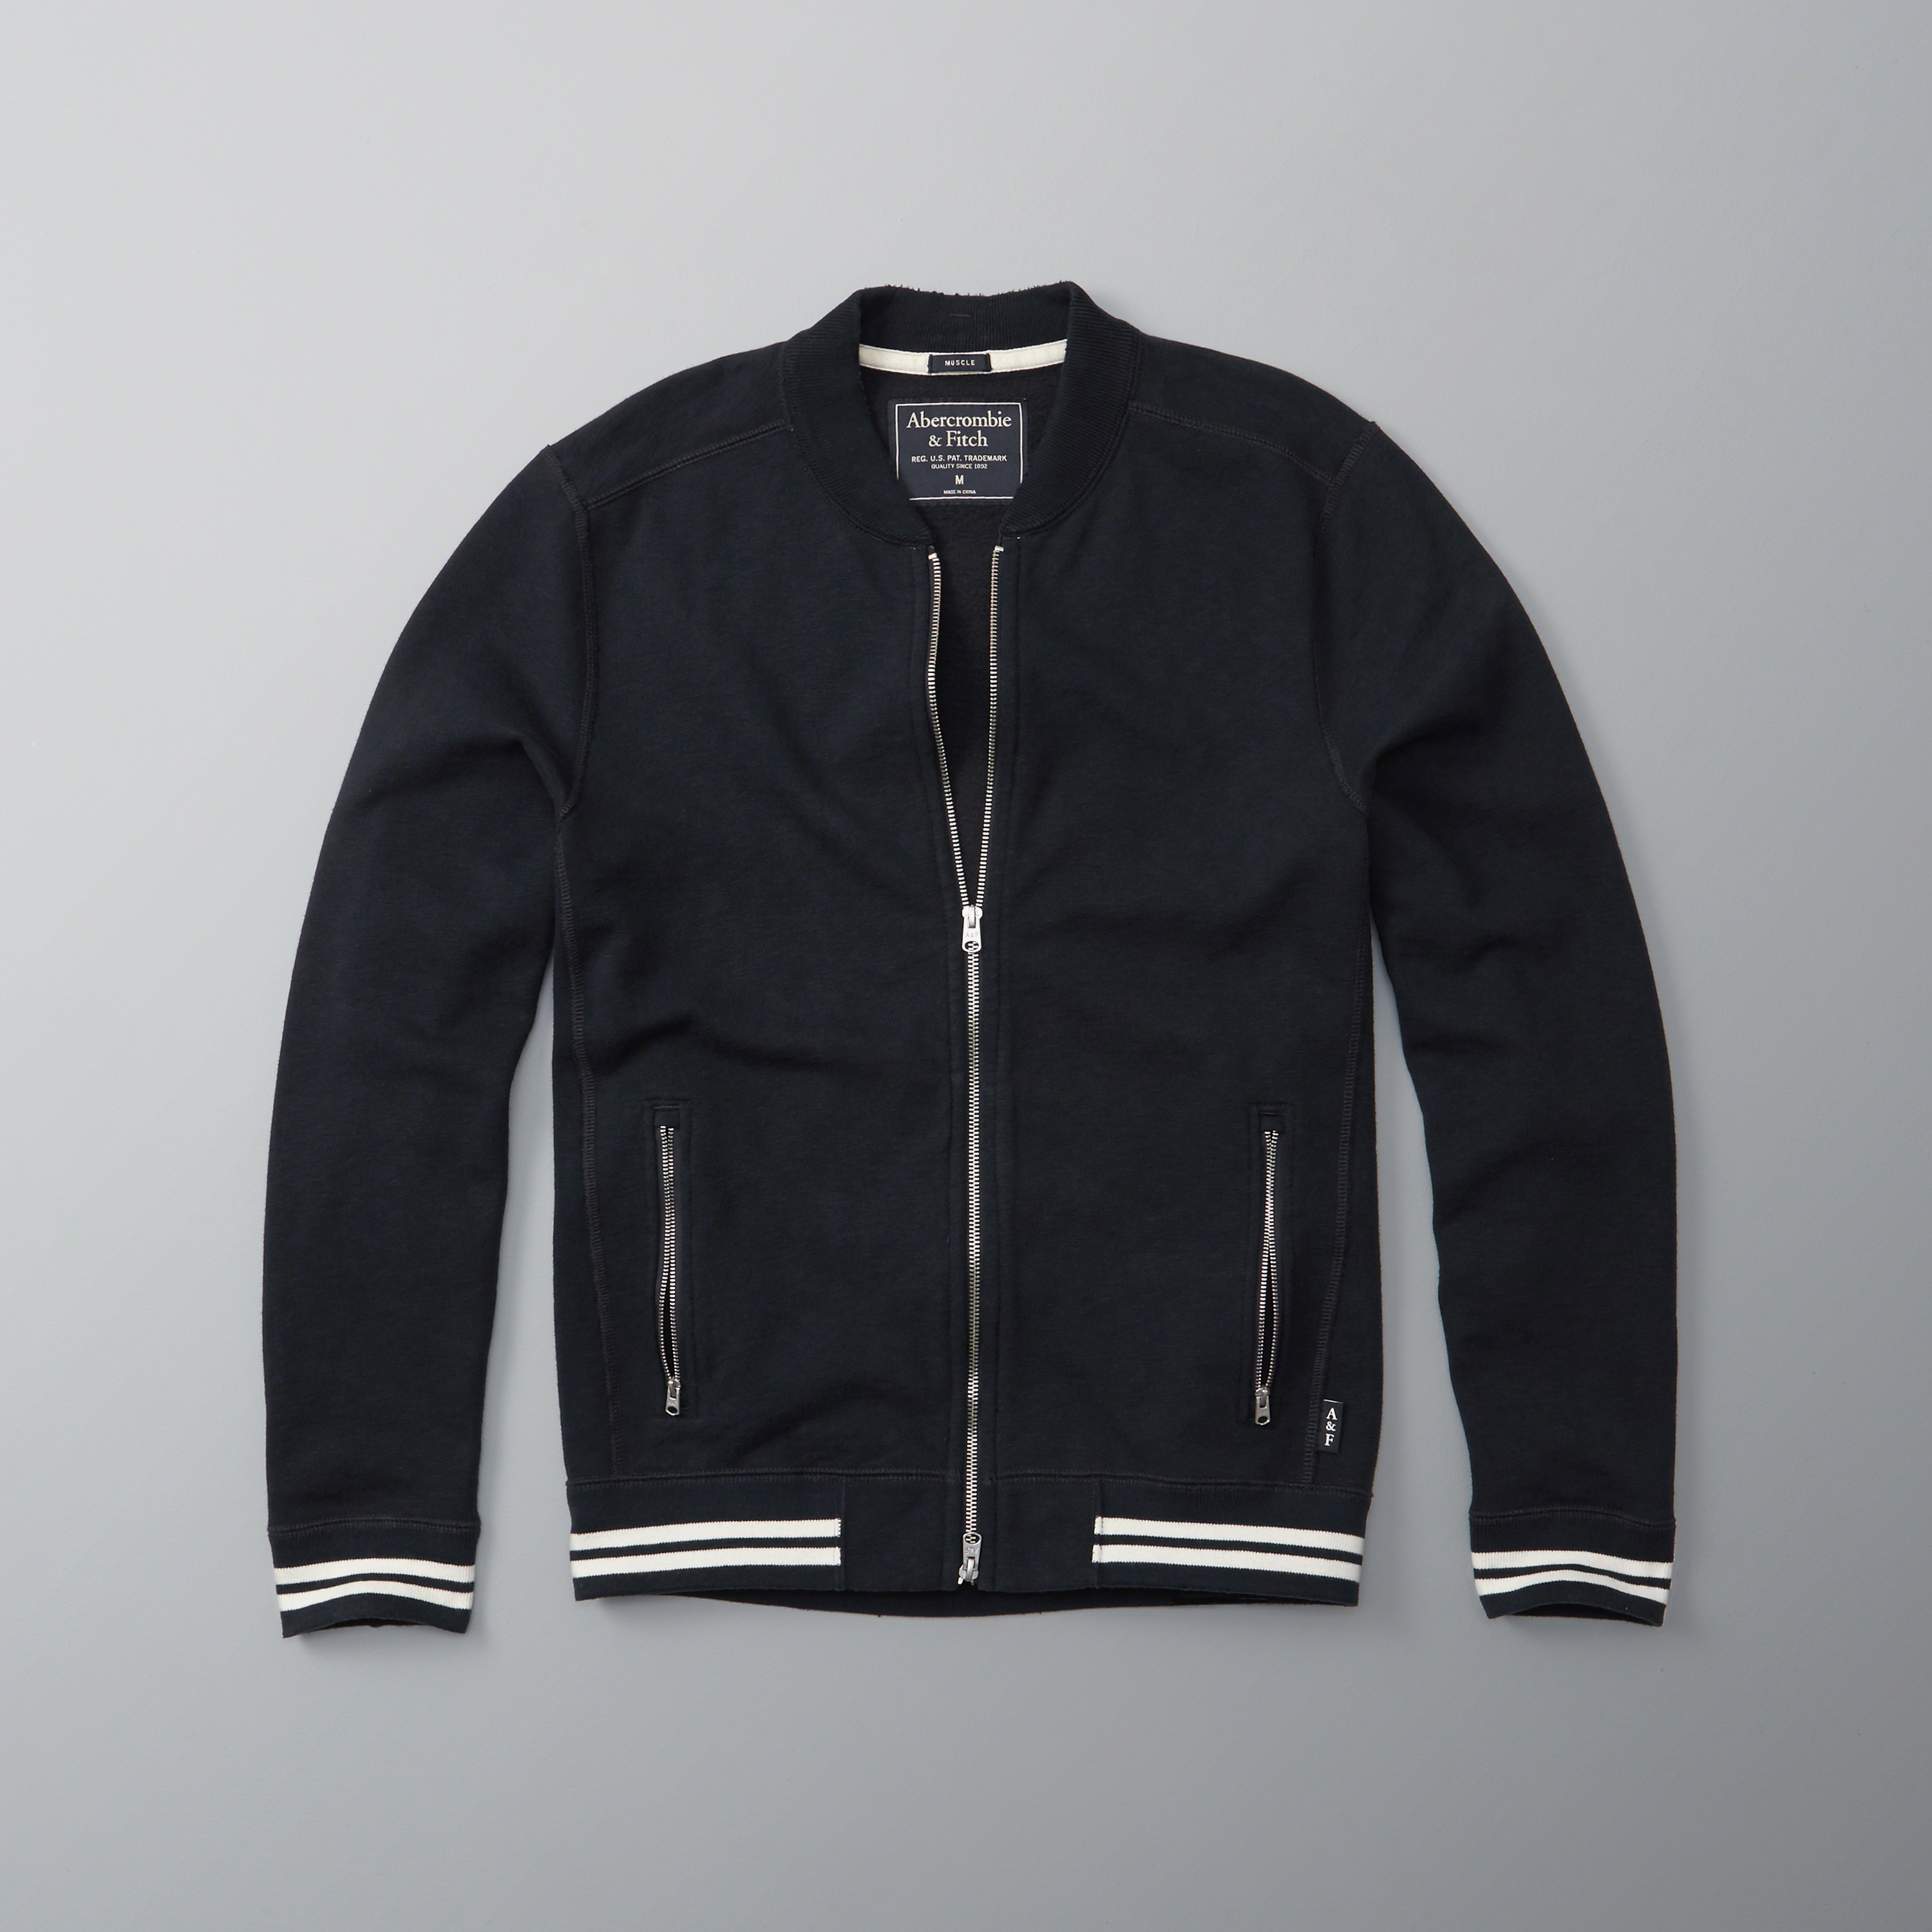 Abercrombie & Fitch Full-zip Baseball Jacket In Blue For